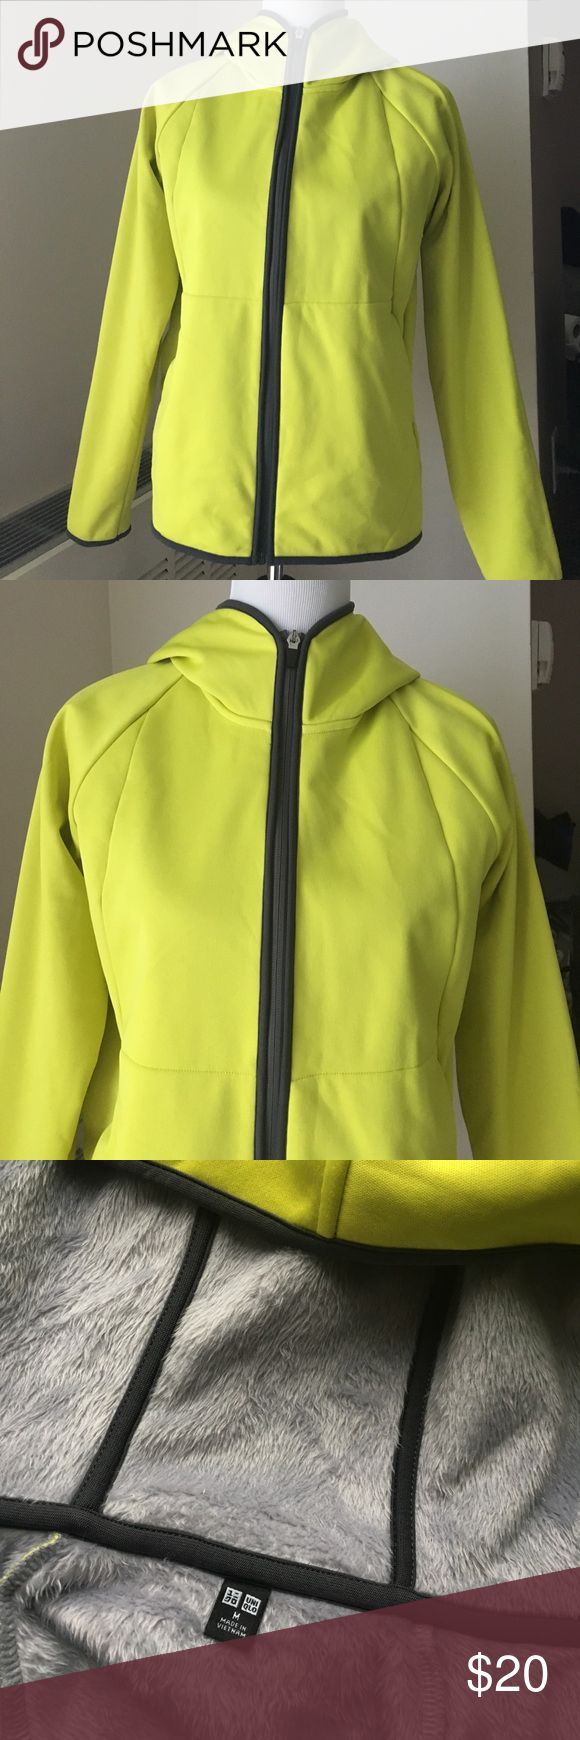 Uniqlo Women's Wind Block Hoodie Jacket Yellow M This is a yellow Uniqlo jacket with a warm fuzzy fleece lining, hooded, two side pockets, zip up. It's the Wind Block Sweat Hoodie style. Size M women's. Clean and no marks or flaws, only worn a couple times, washed on delicate. Uniqlo Jackets & Coats